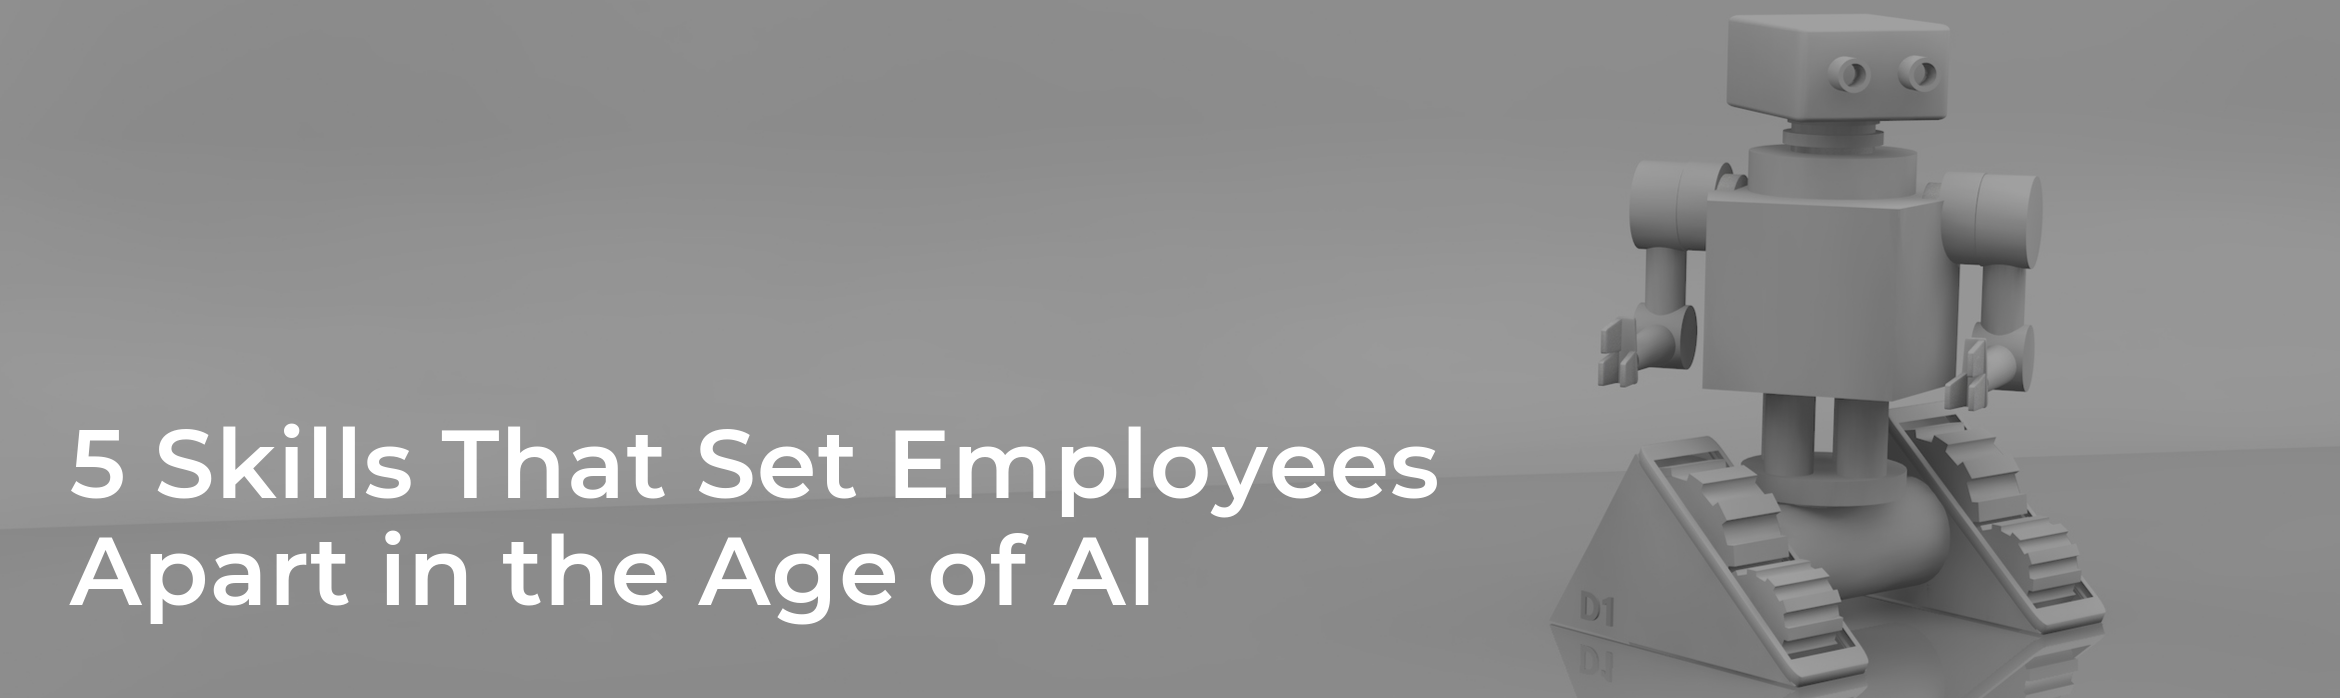 5 Skills That Set Employees Apart in the Age of AI